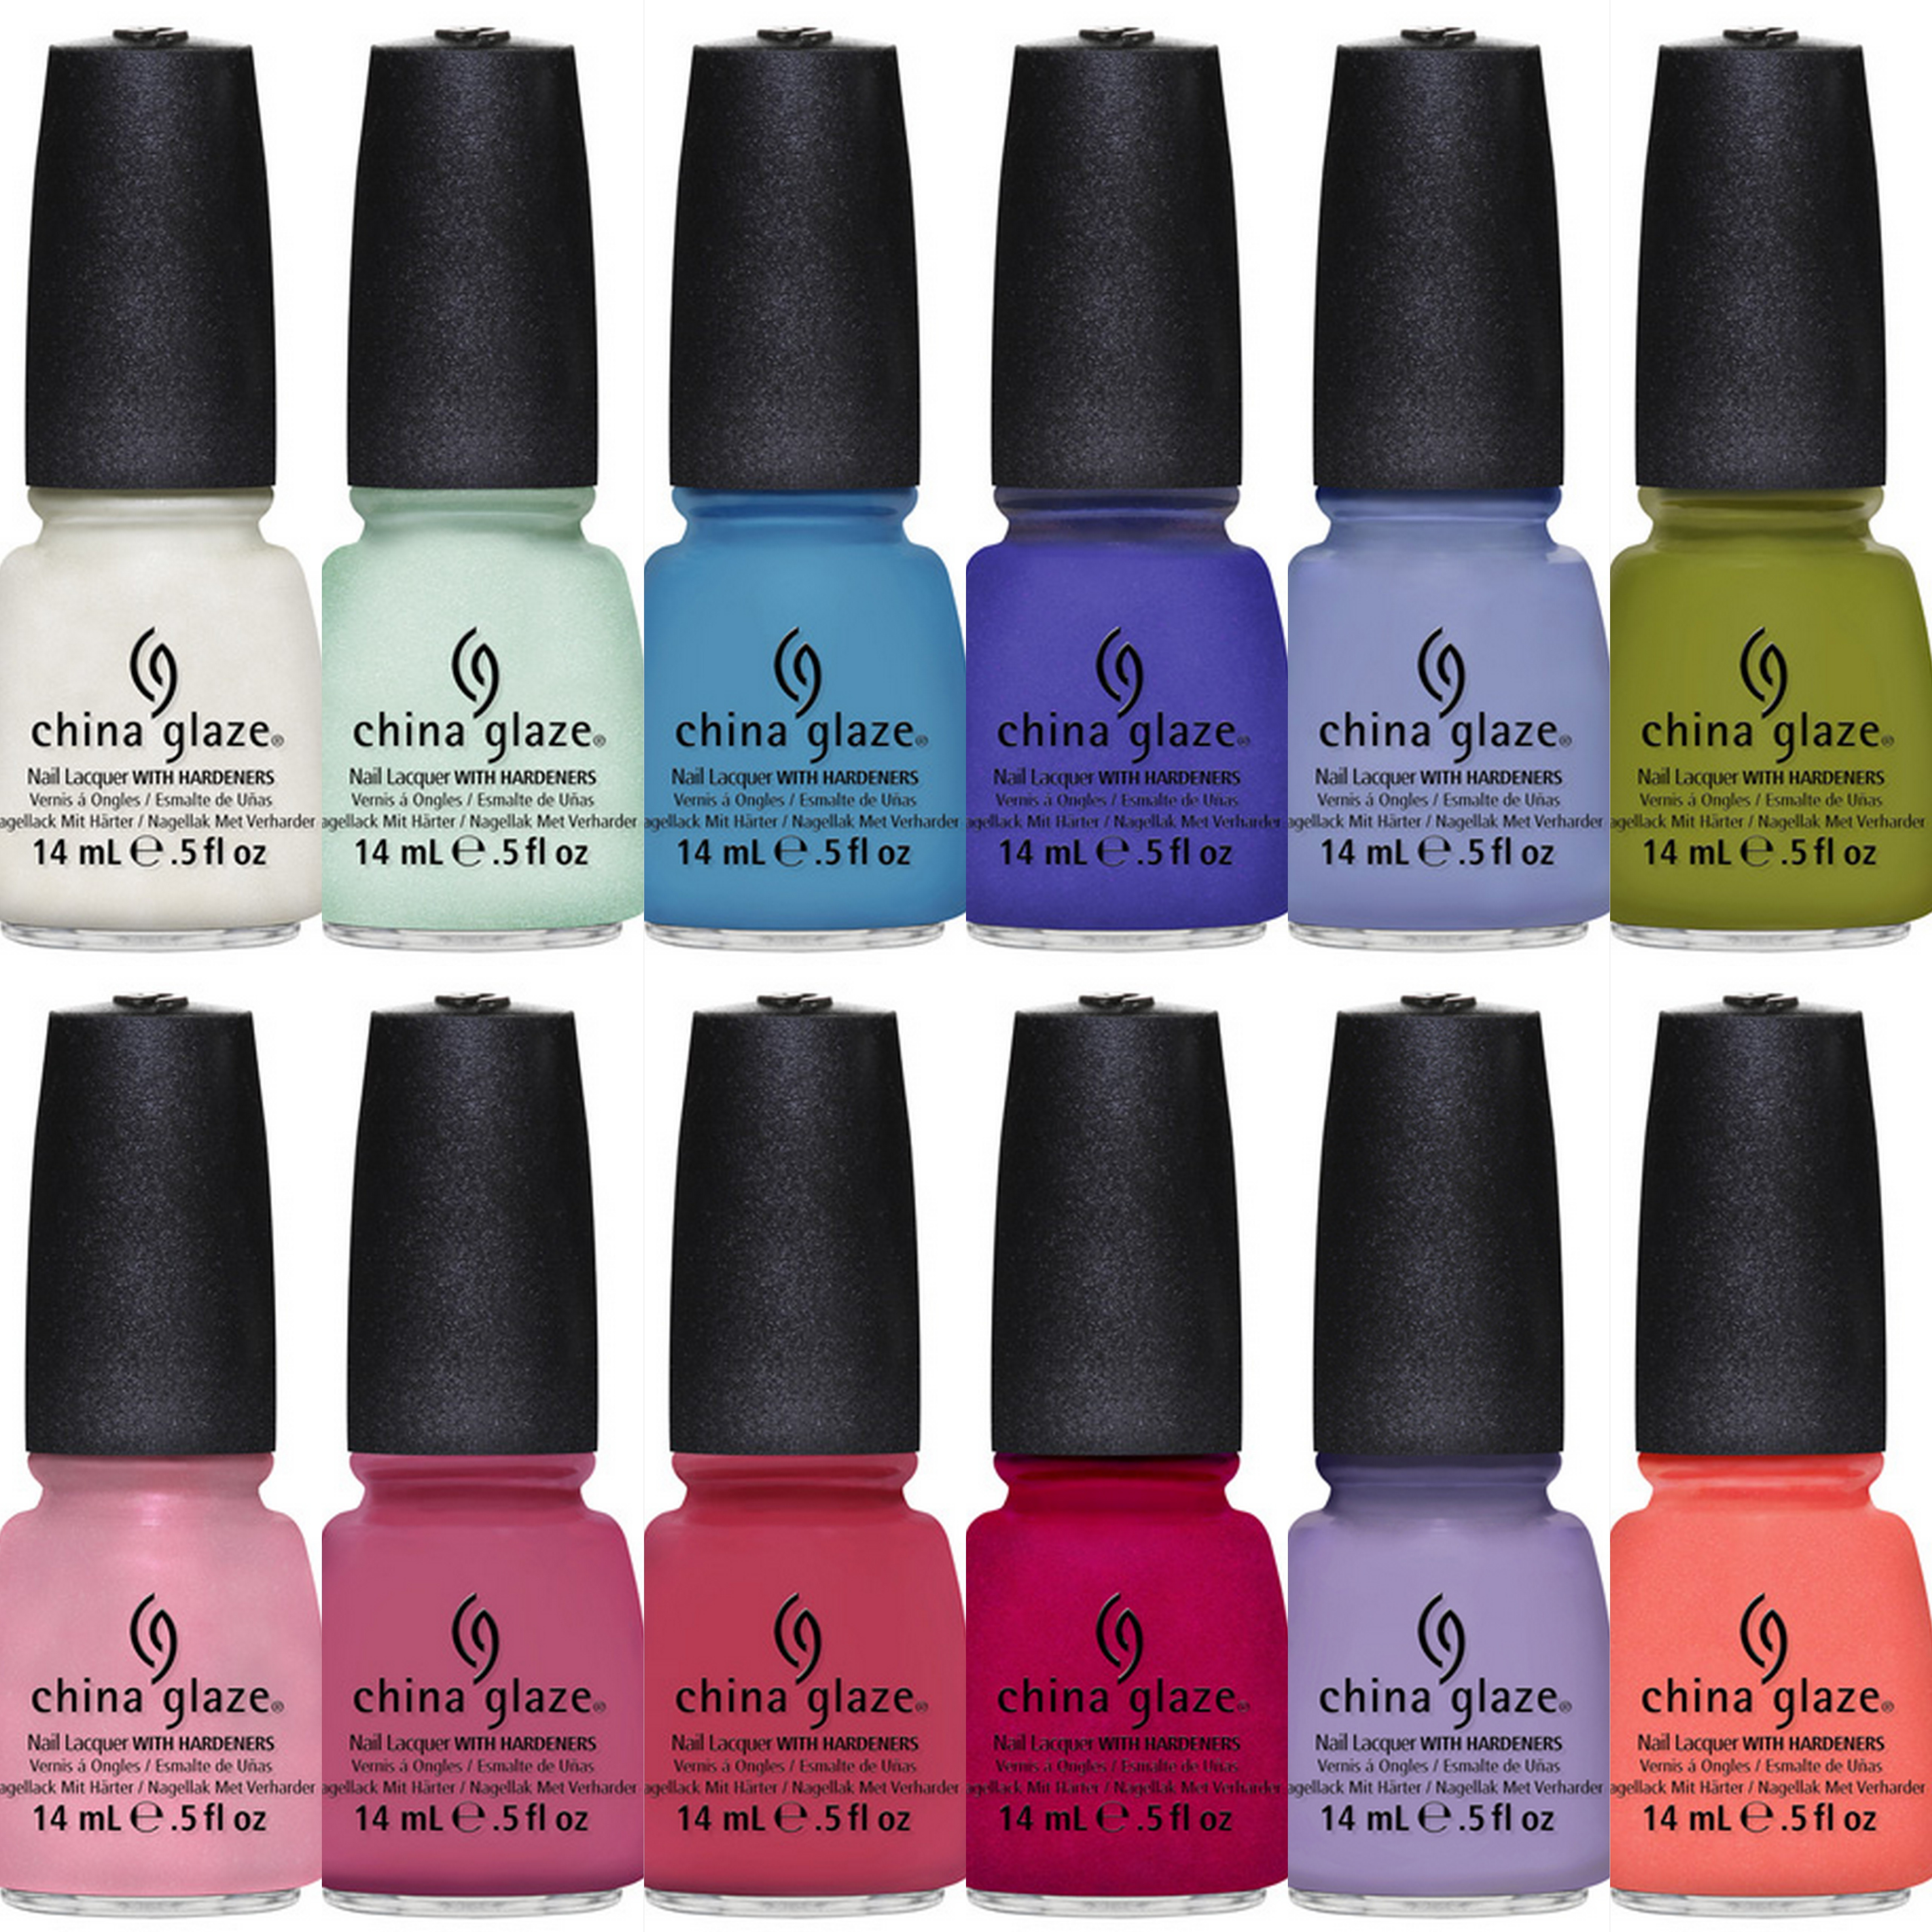 Introducing China Glaze Avant Garden Nail Lacquers